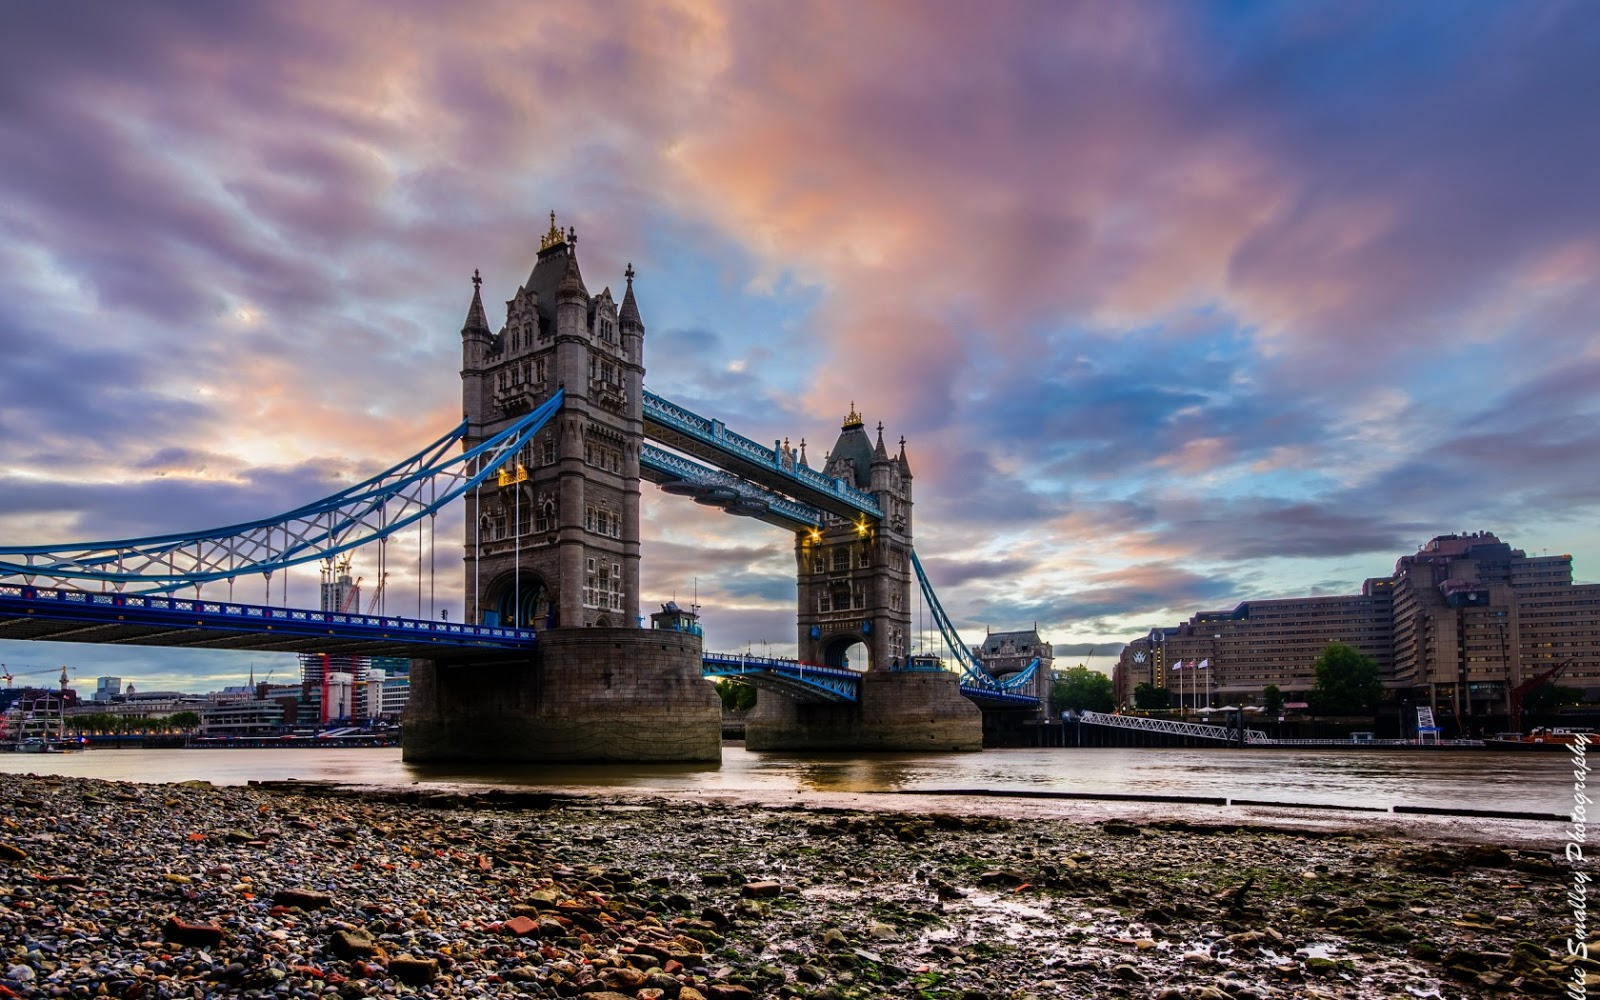 Download London City Hd Wallpaper Gallery